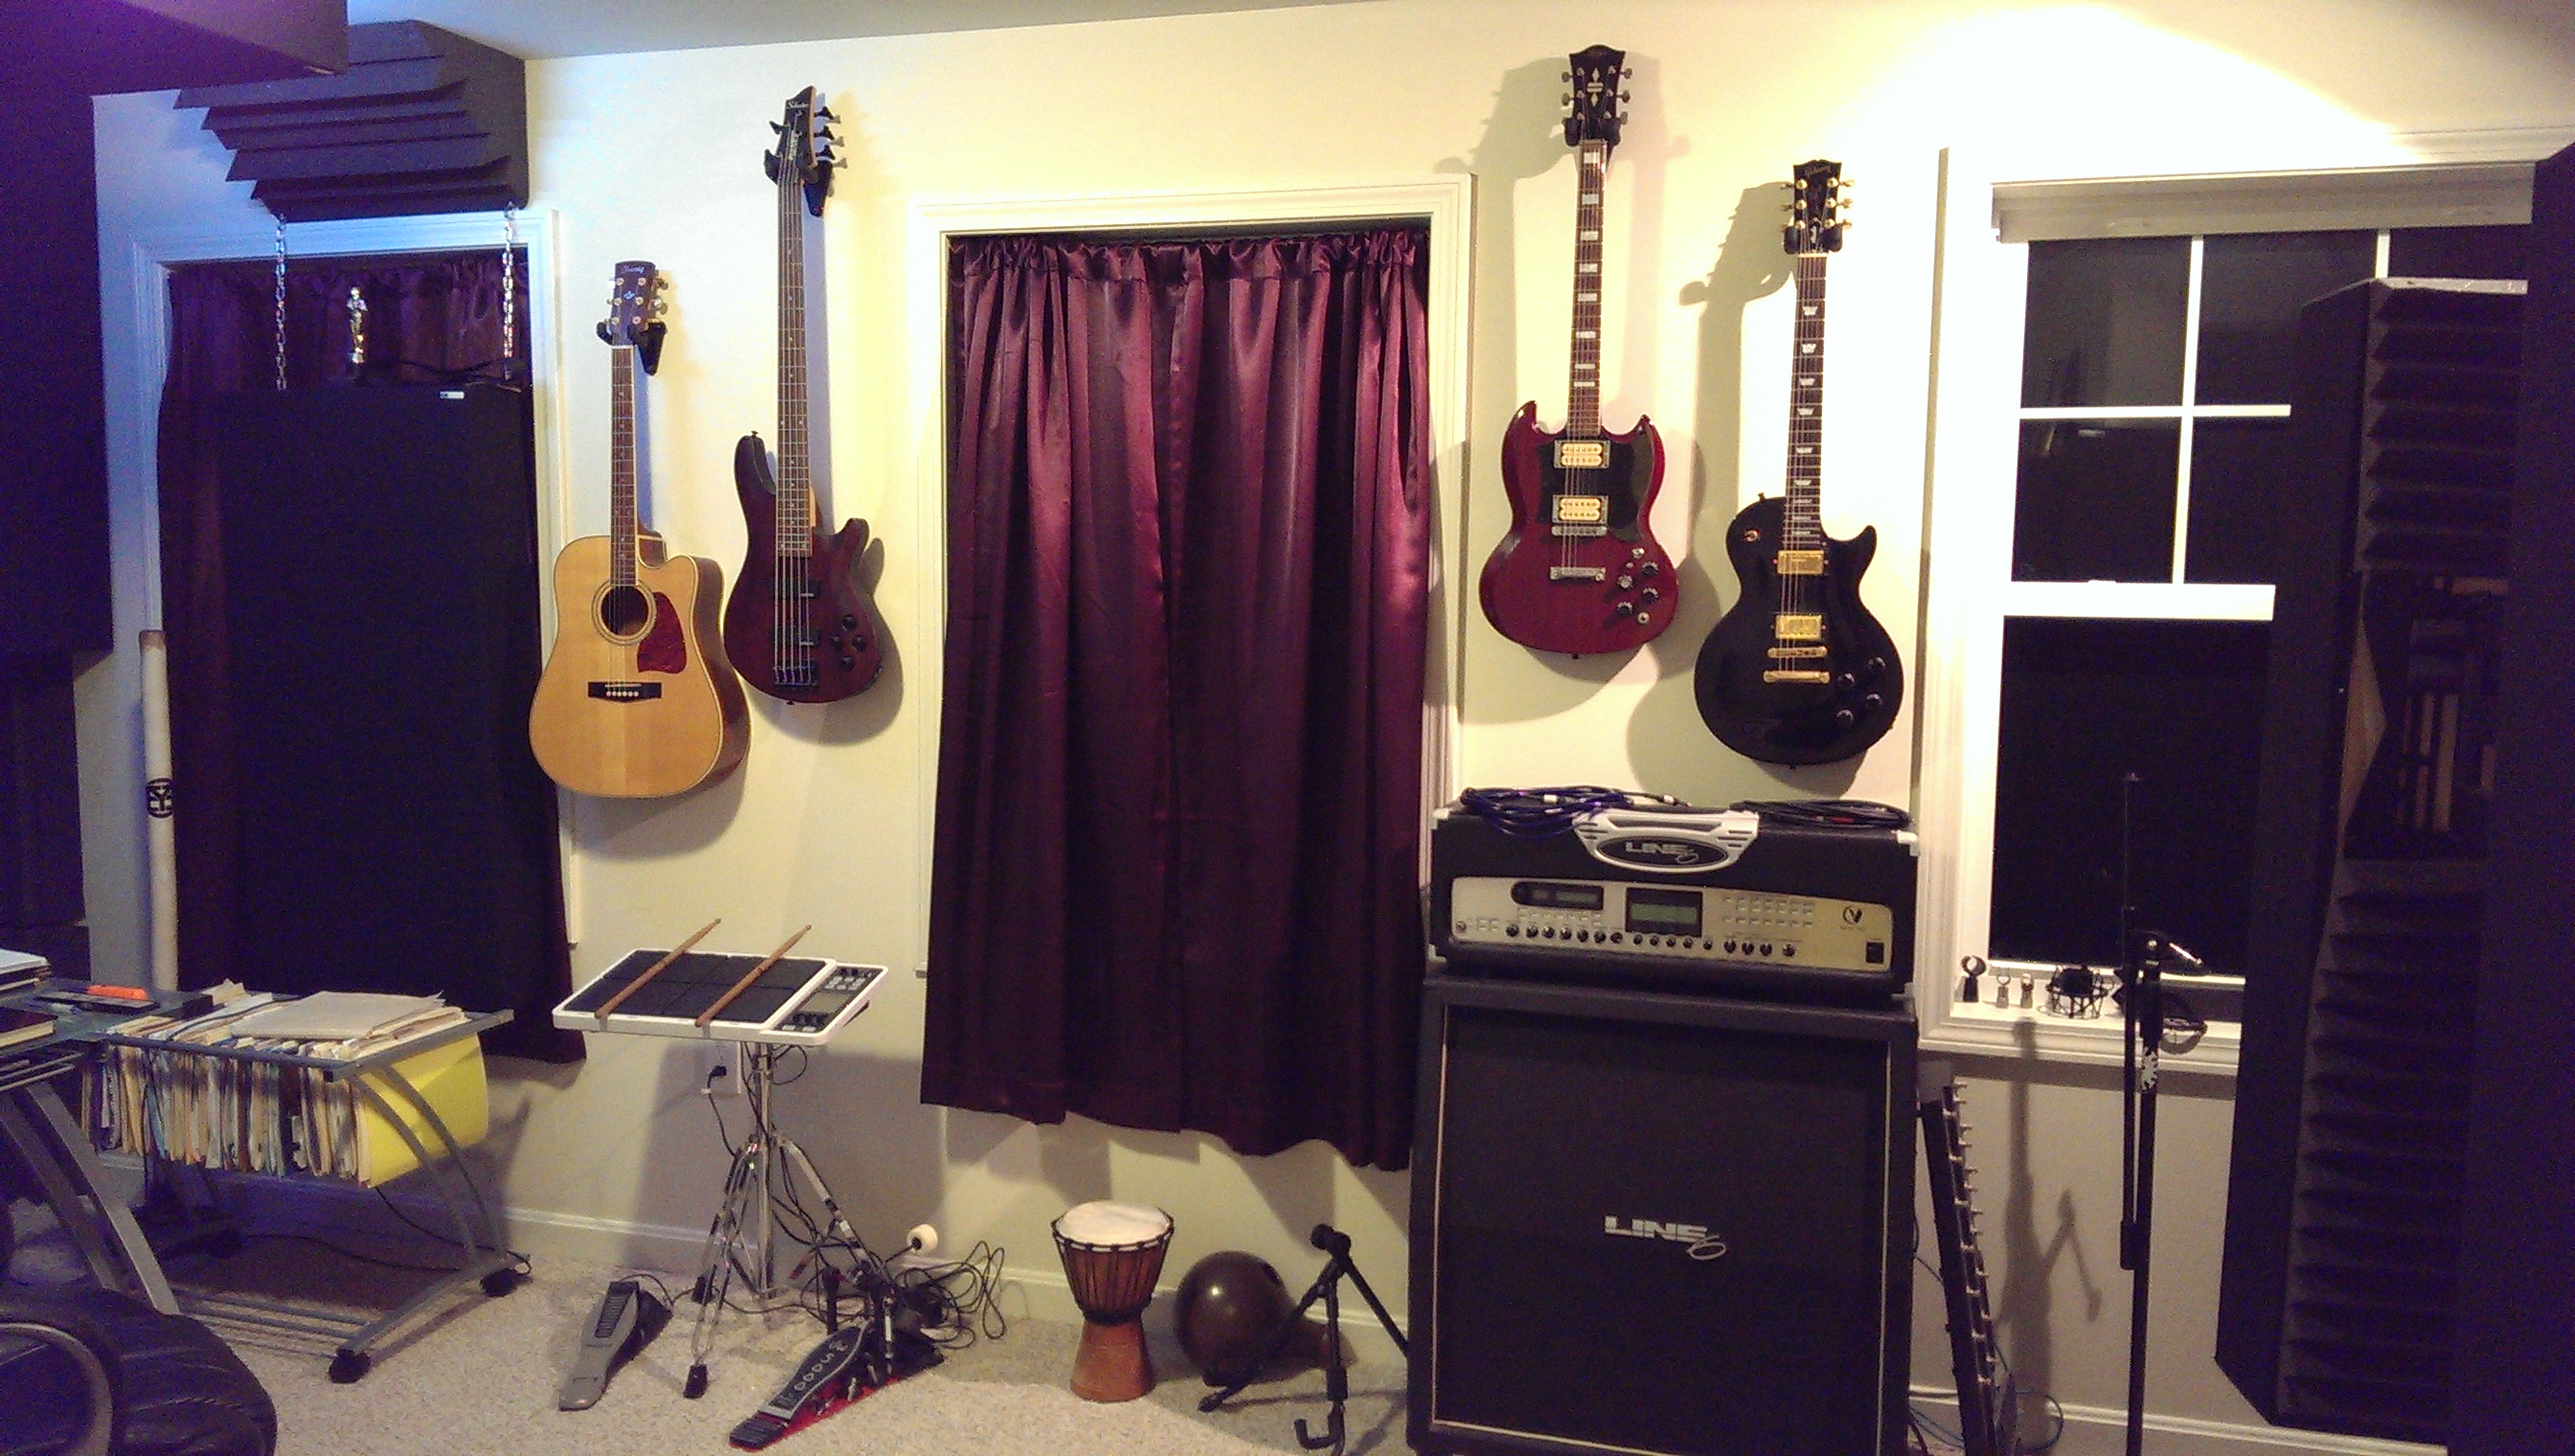 Four guitars hung on the wall of a recording studio